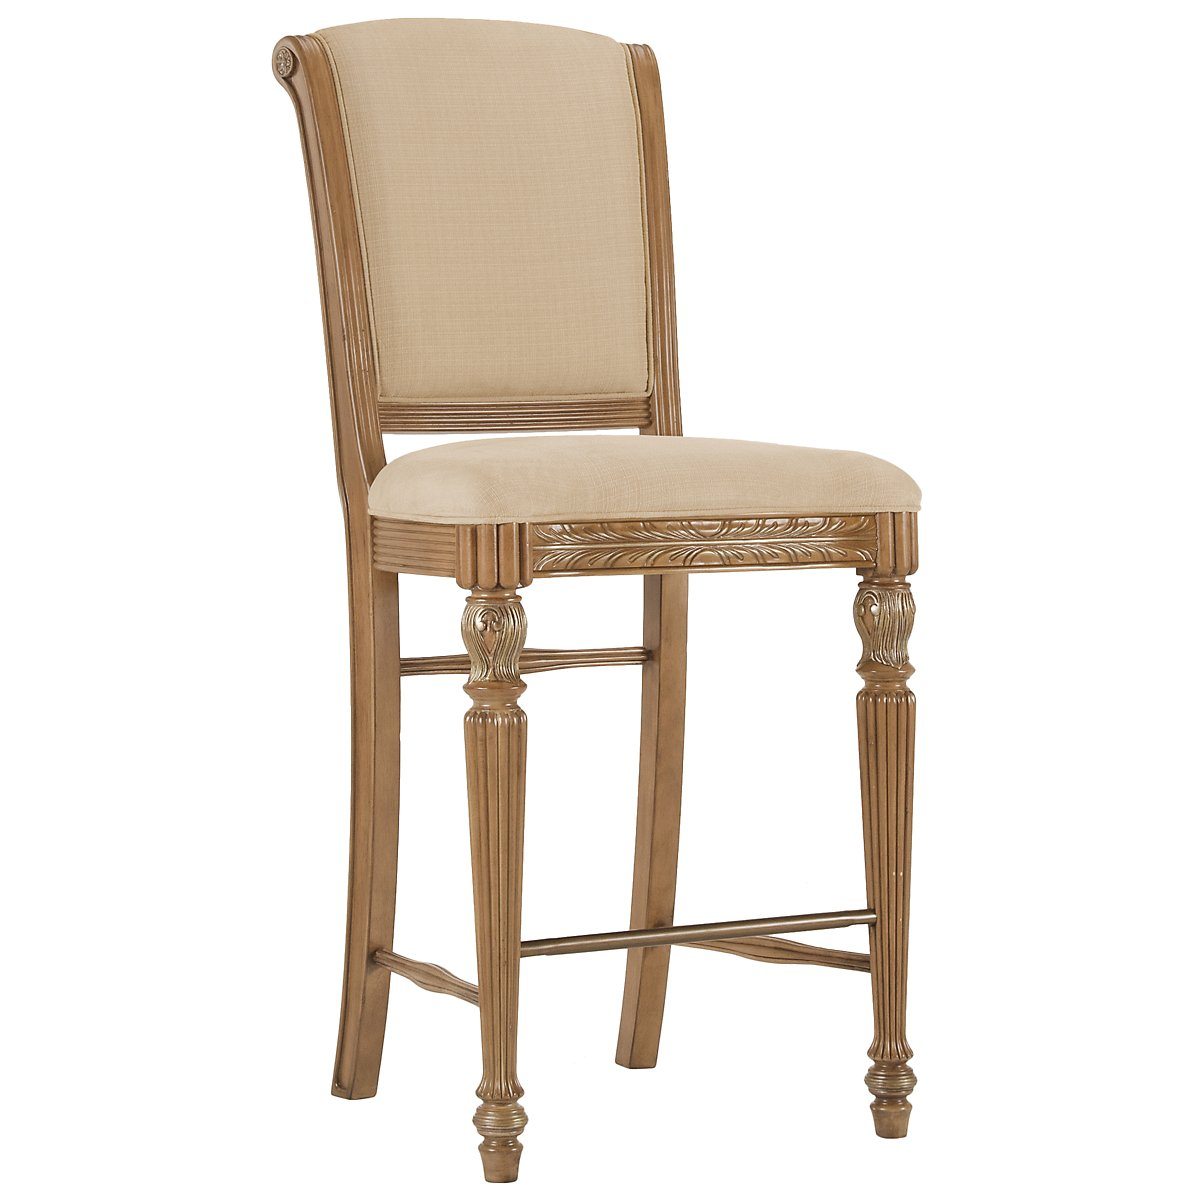 "Tradewinds2 Light Tone 30"" Upholstered Barstool"